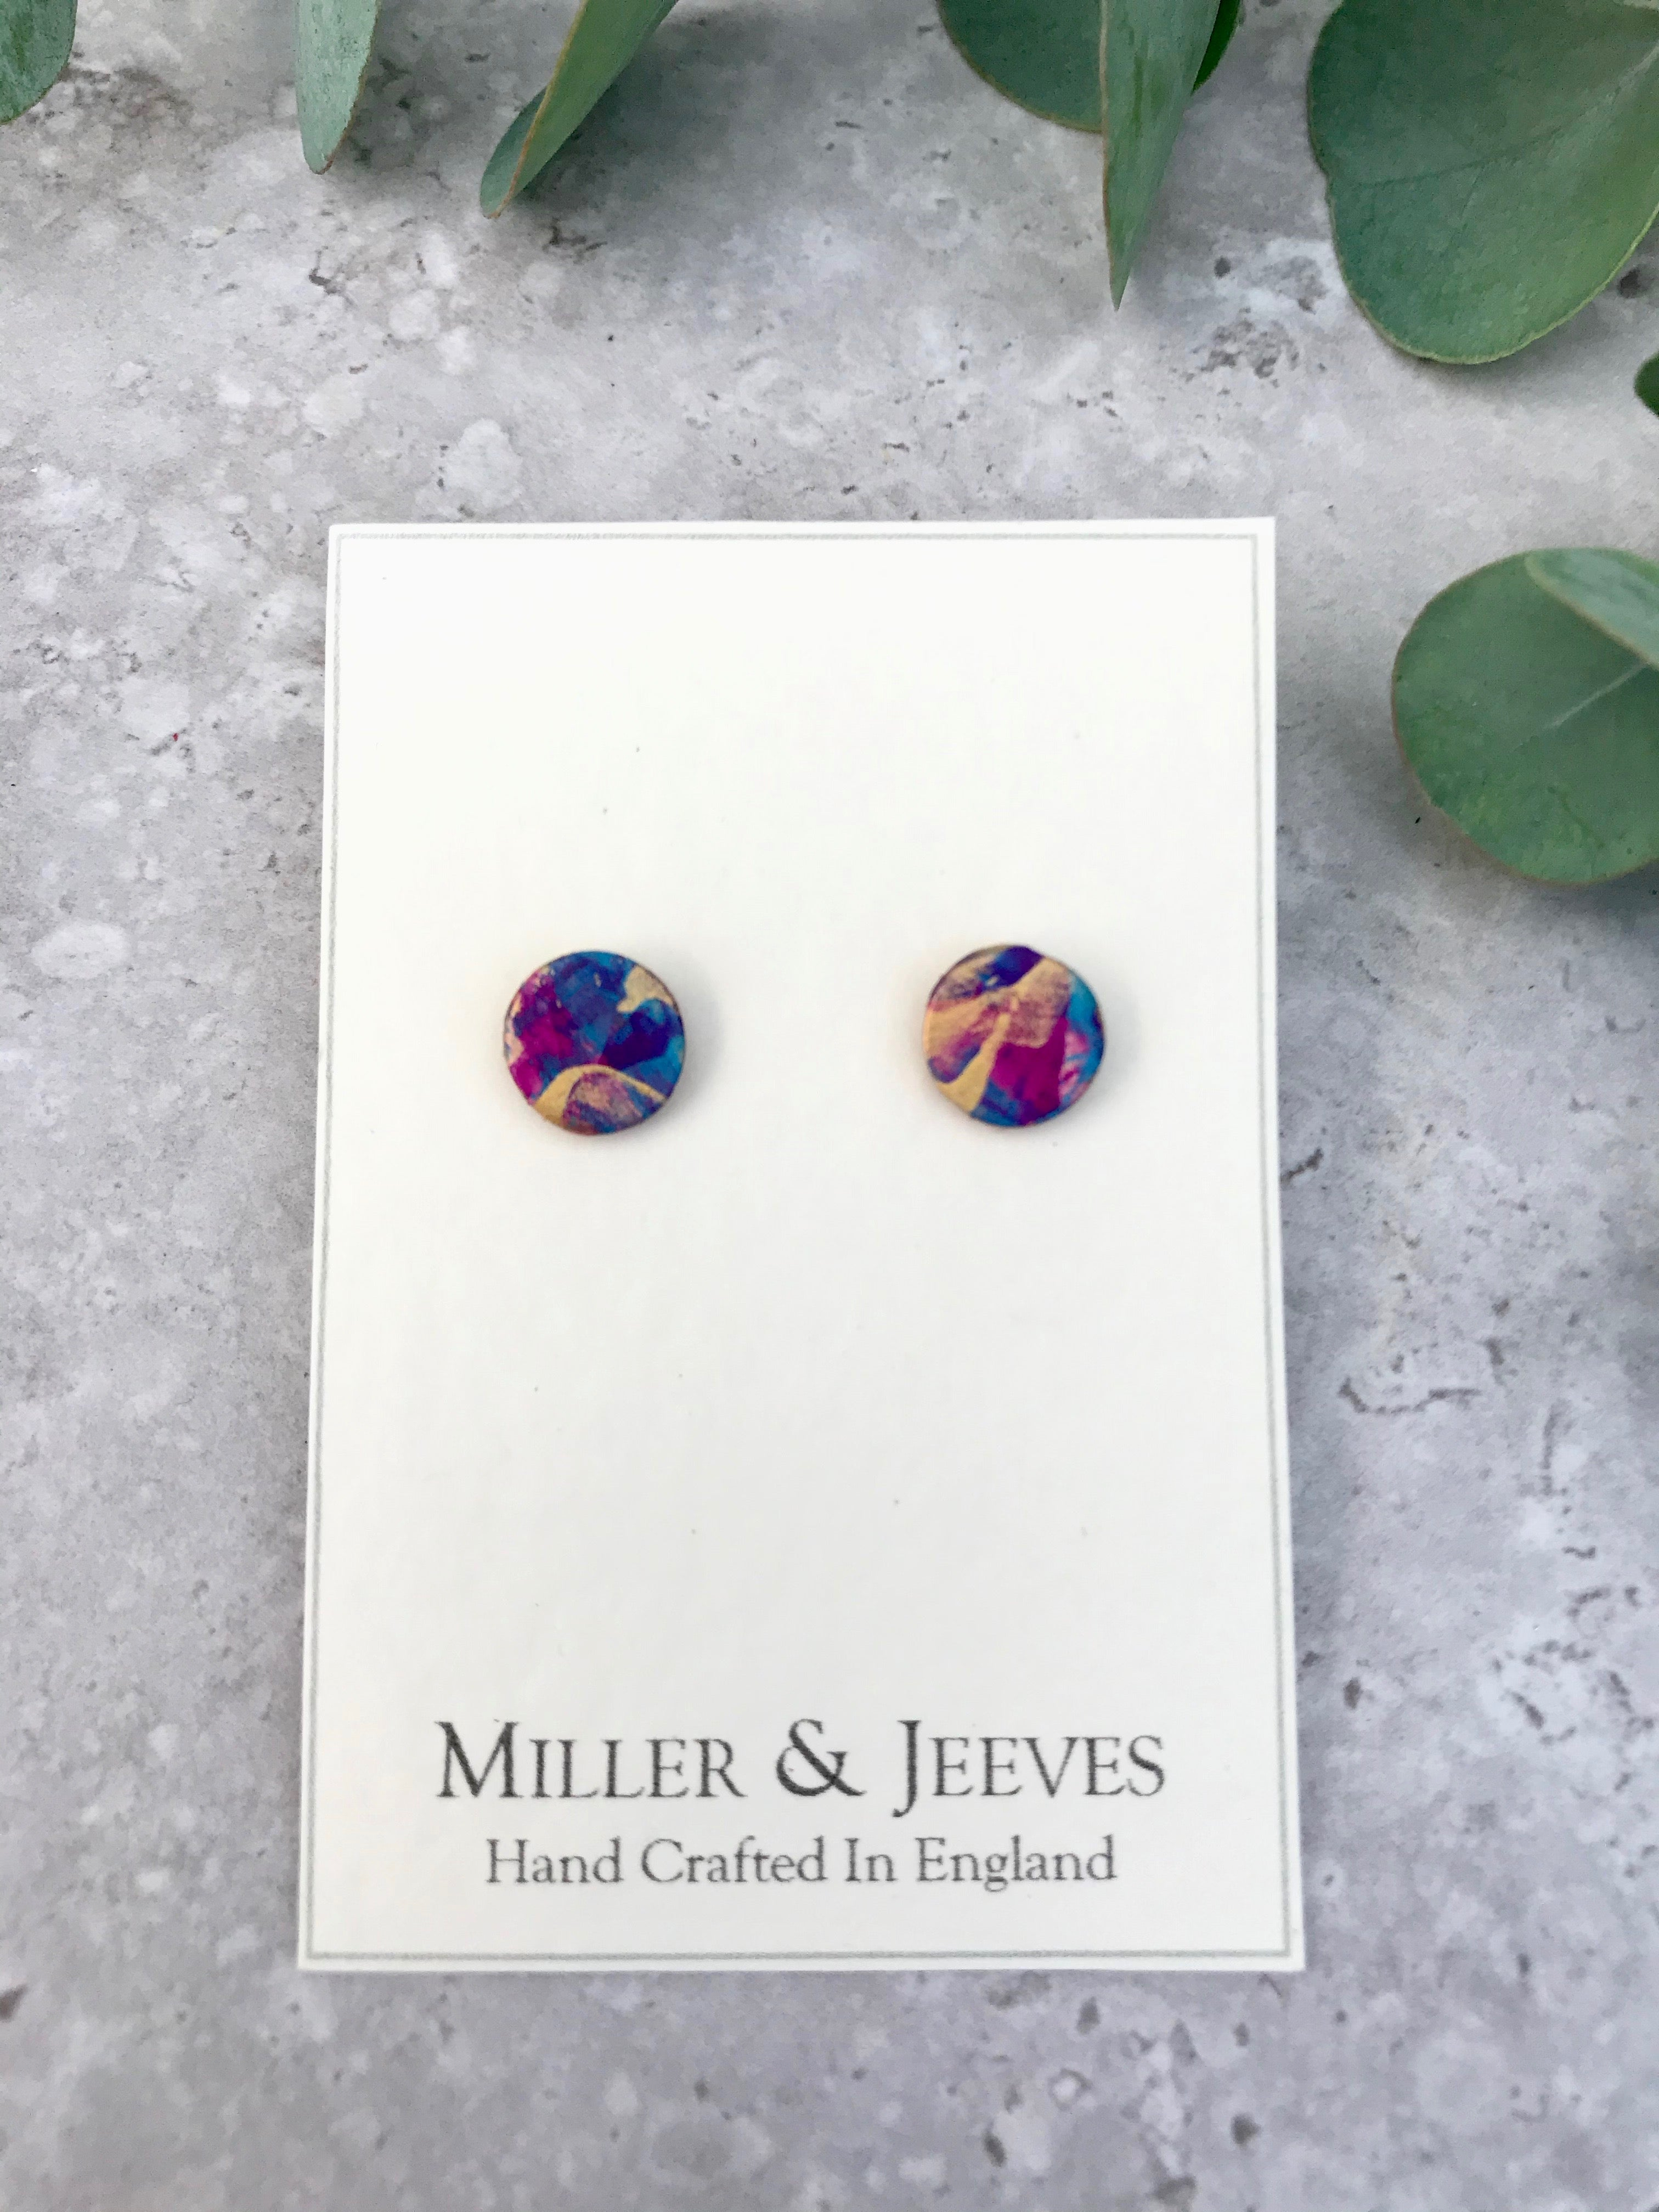 Hand-painted Leather Earrings with Stud Fastening - pink/purple/blue/gold (3/8a1)